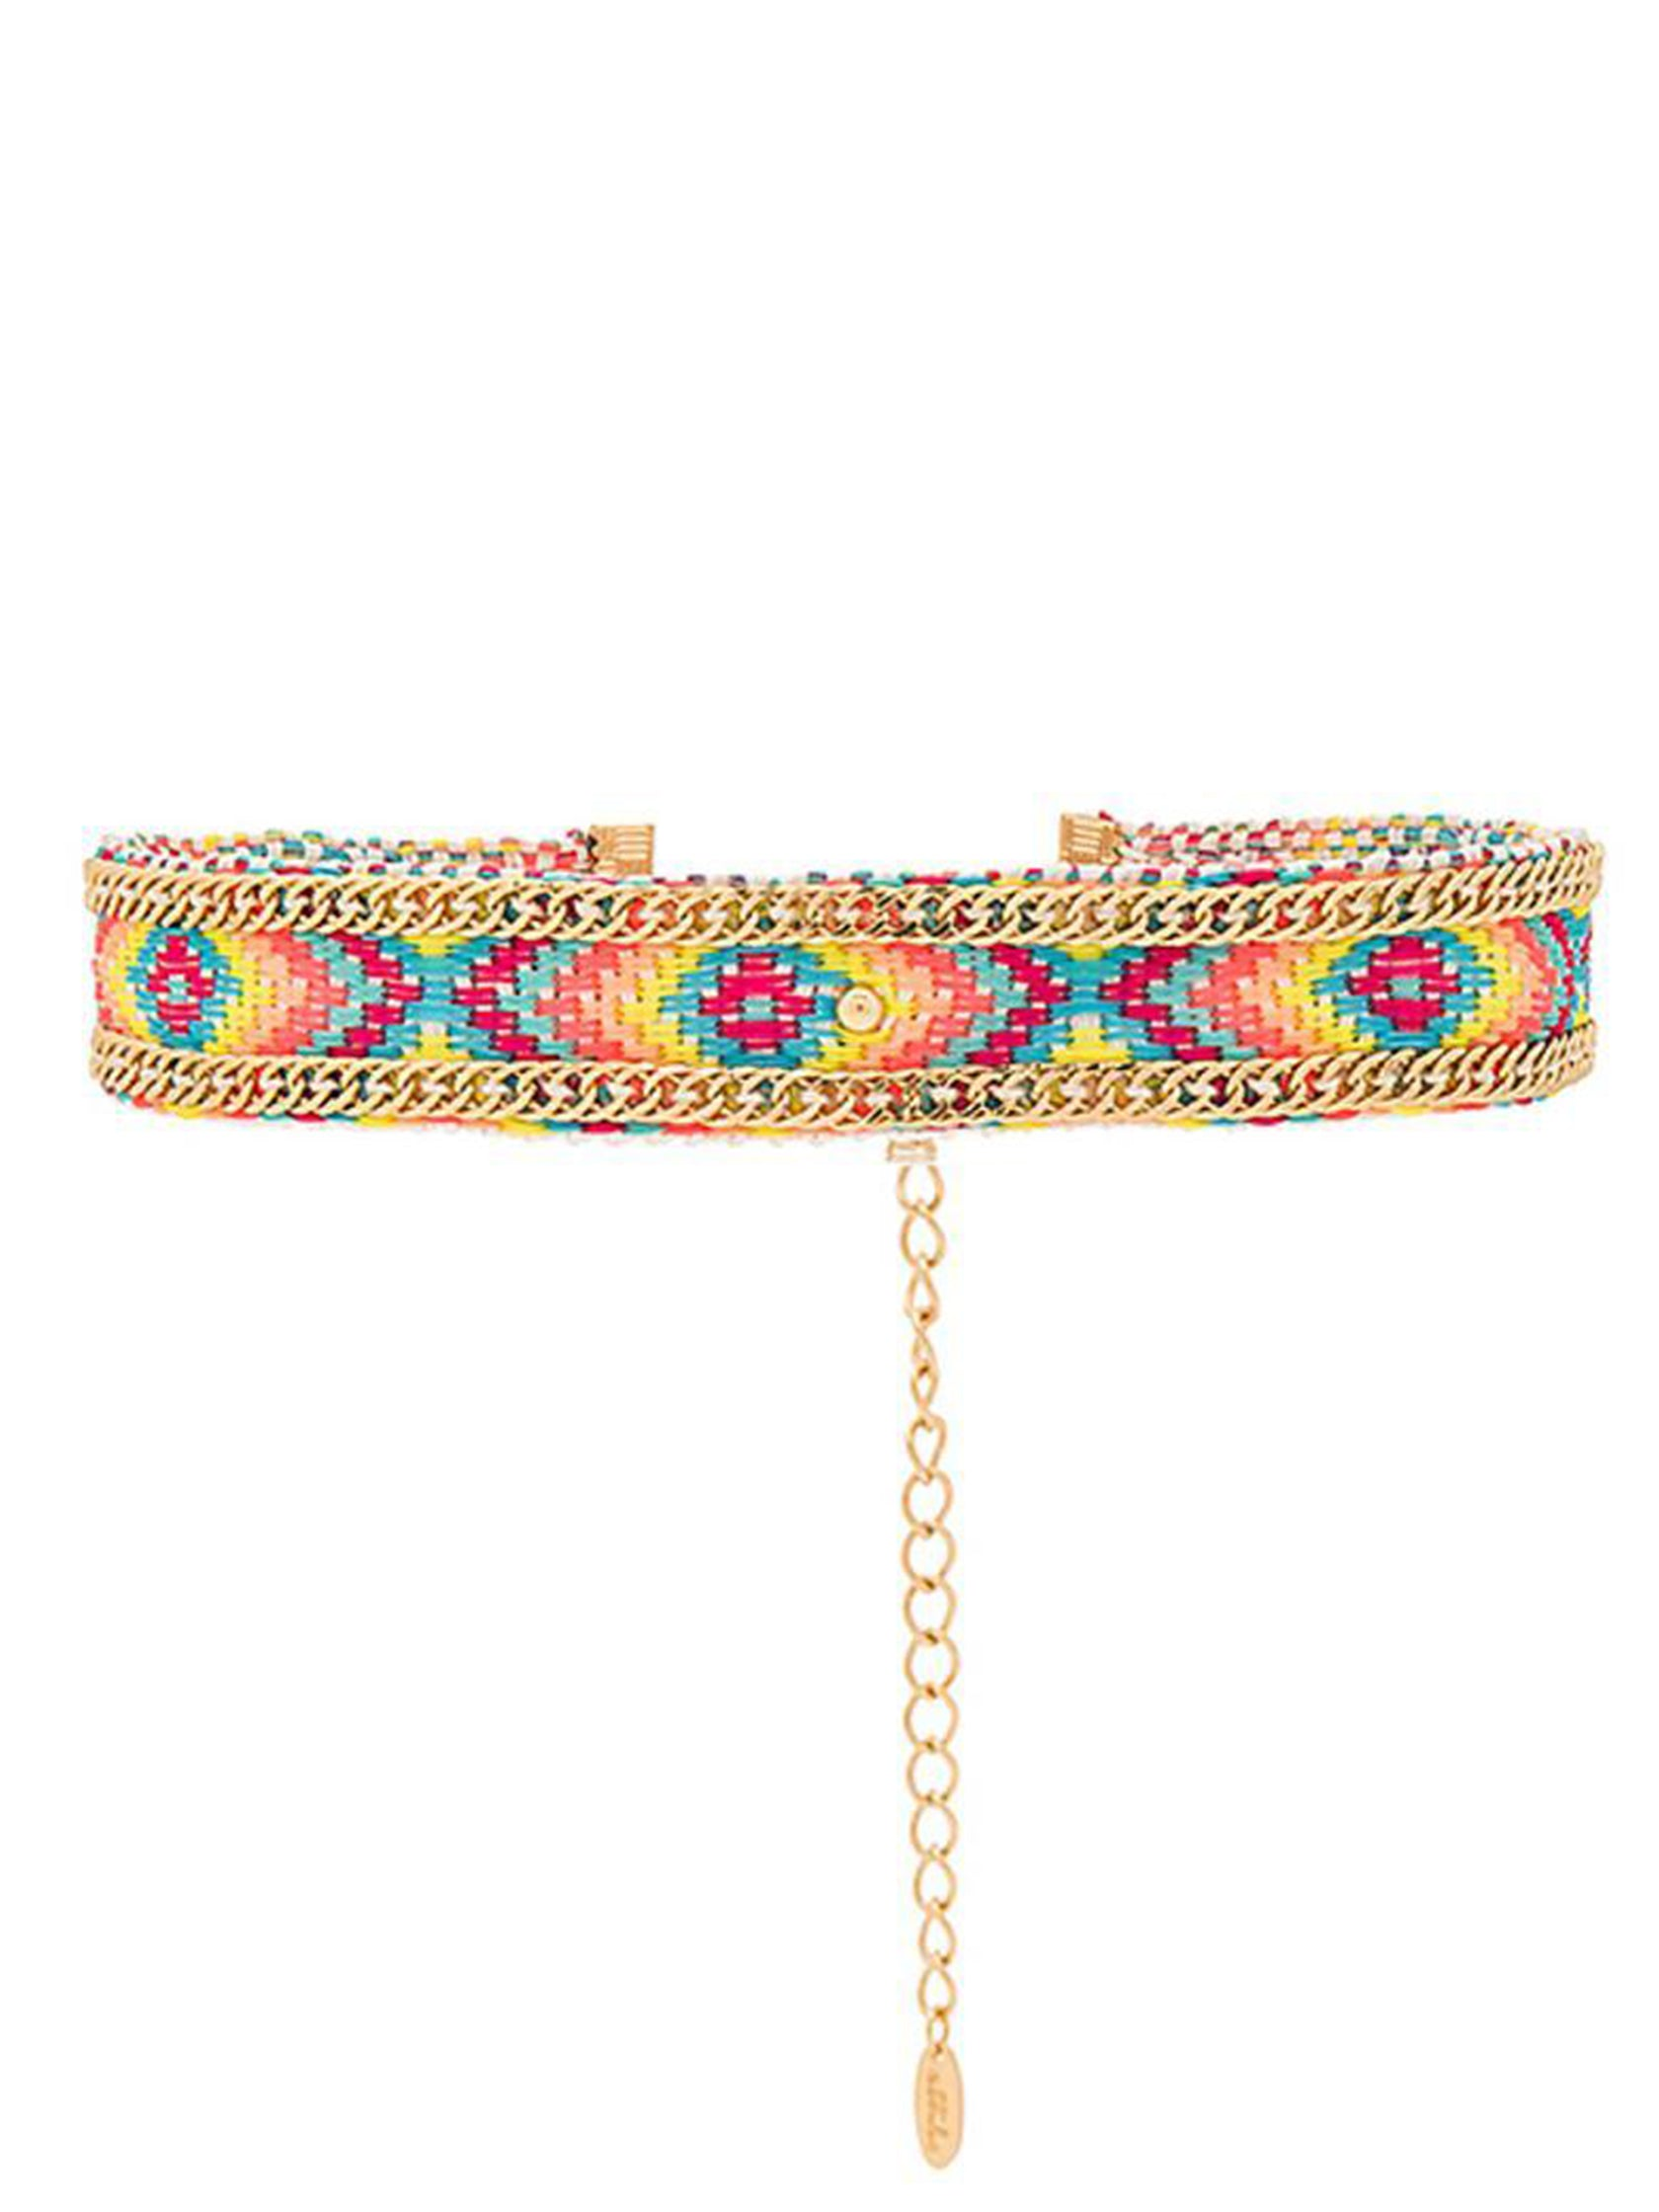 Girl outfit in a choker rental from Ettika called Rainbow Gypsy Friendship Choker